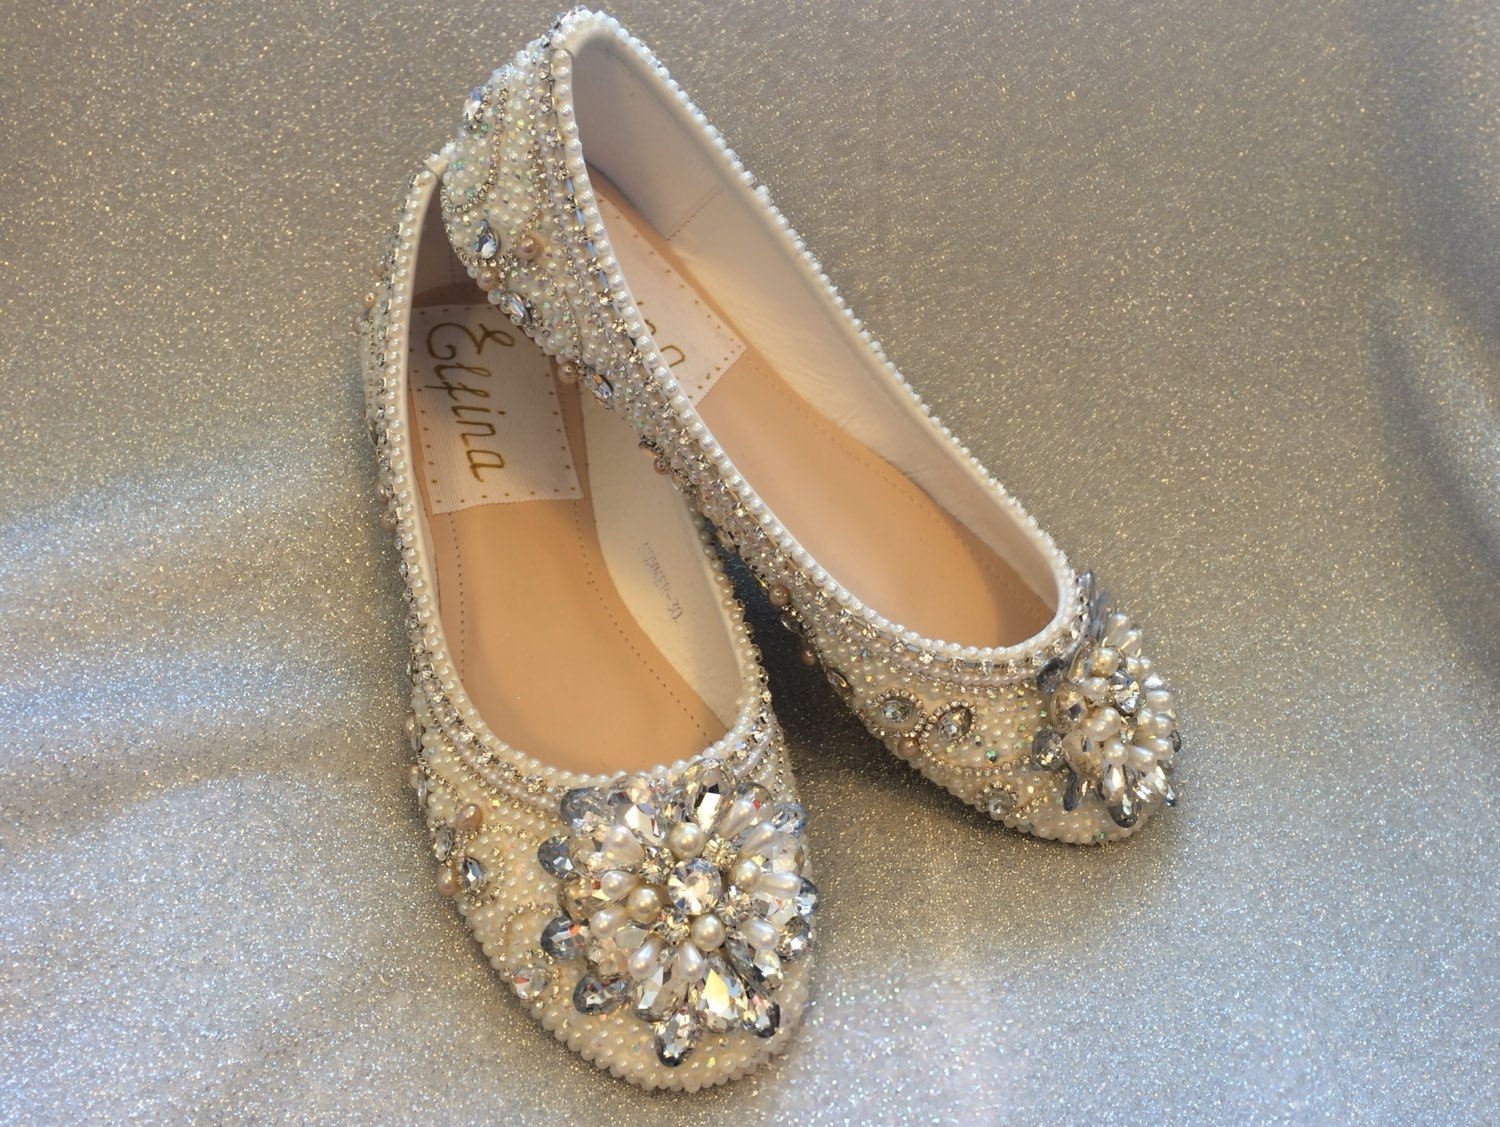 Let Dillard's be your destination for your wedding and reception footwear needs, available in regular and extended sizes from all your favorite brands. Find Badgley Mischka, kate spade new york, Vince Camuto, Jessica Simpson, and more at Dillard's.